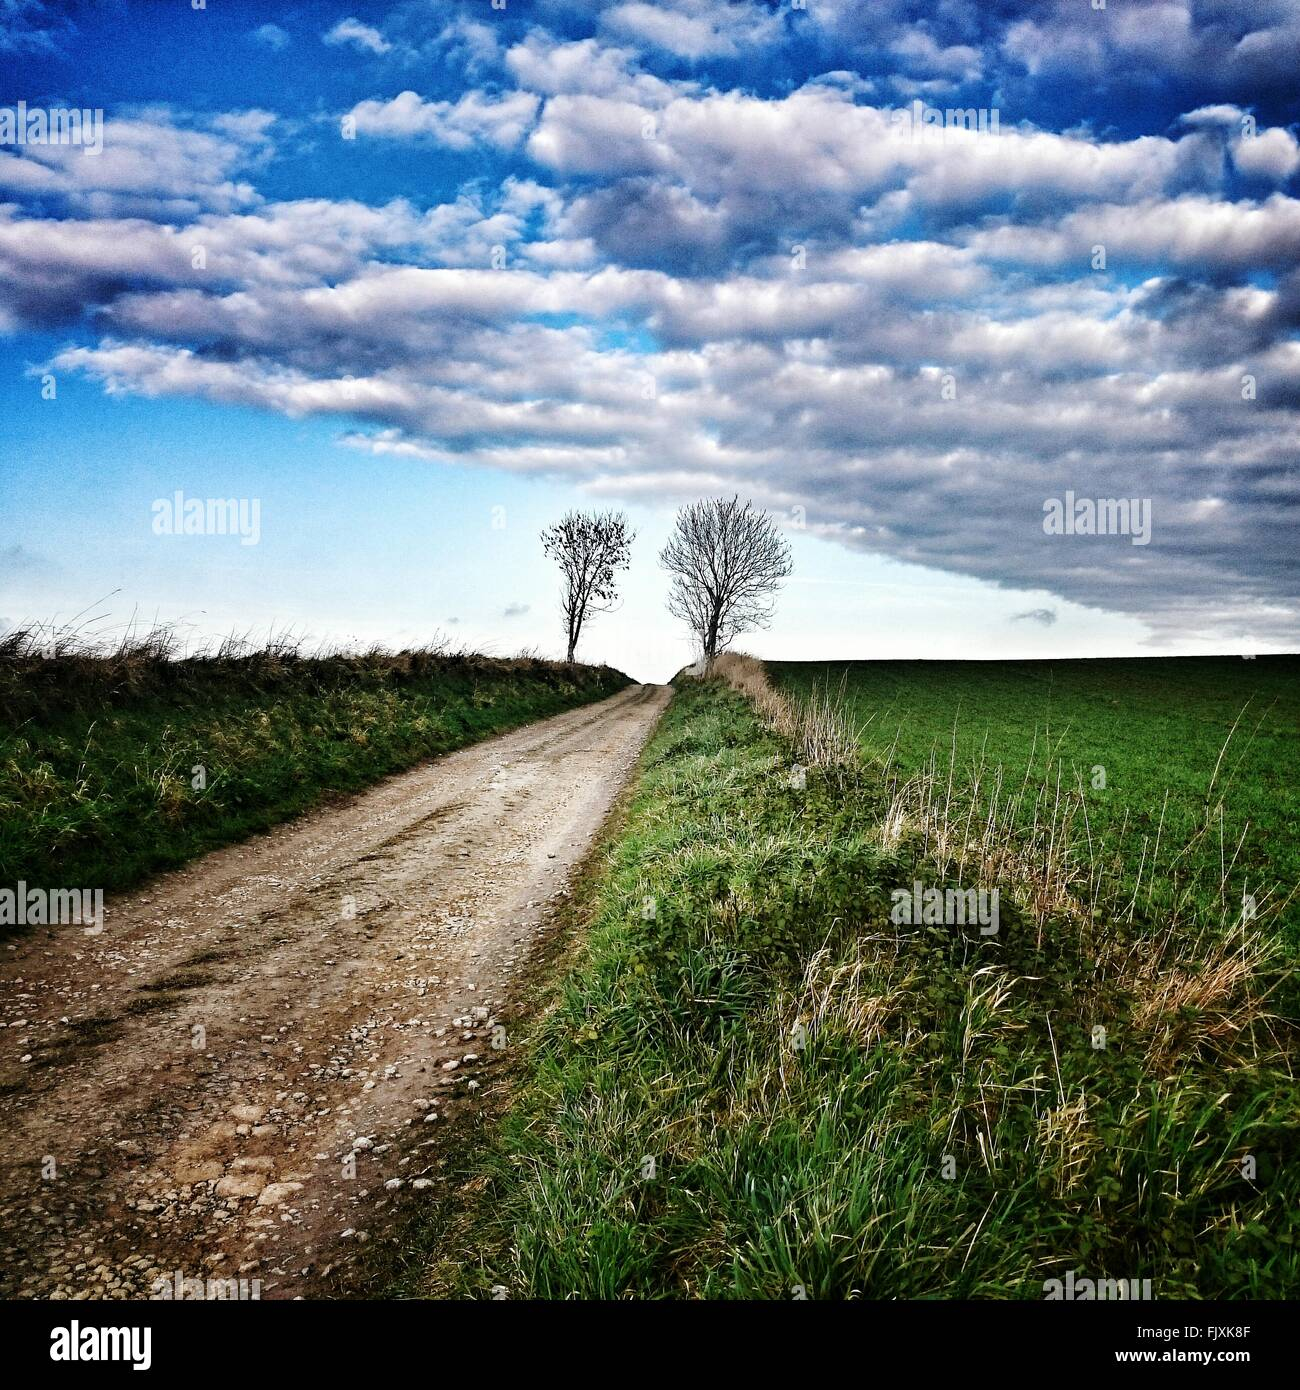 Dirt Road Amidst Grassy Field Against Cloudy Sky - Stock Image